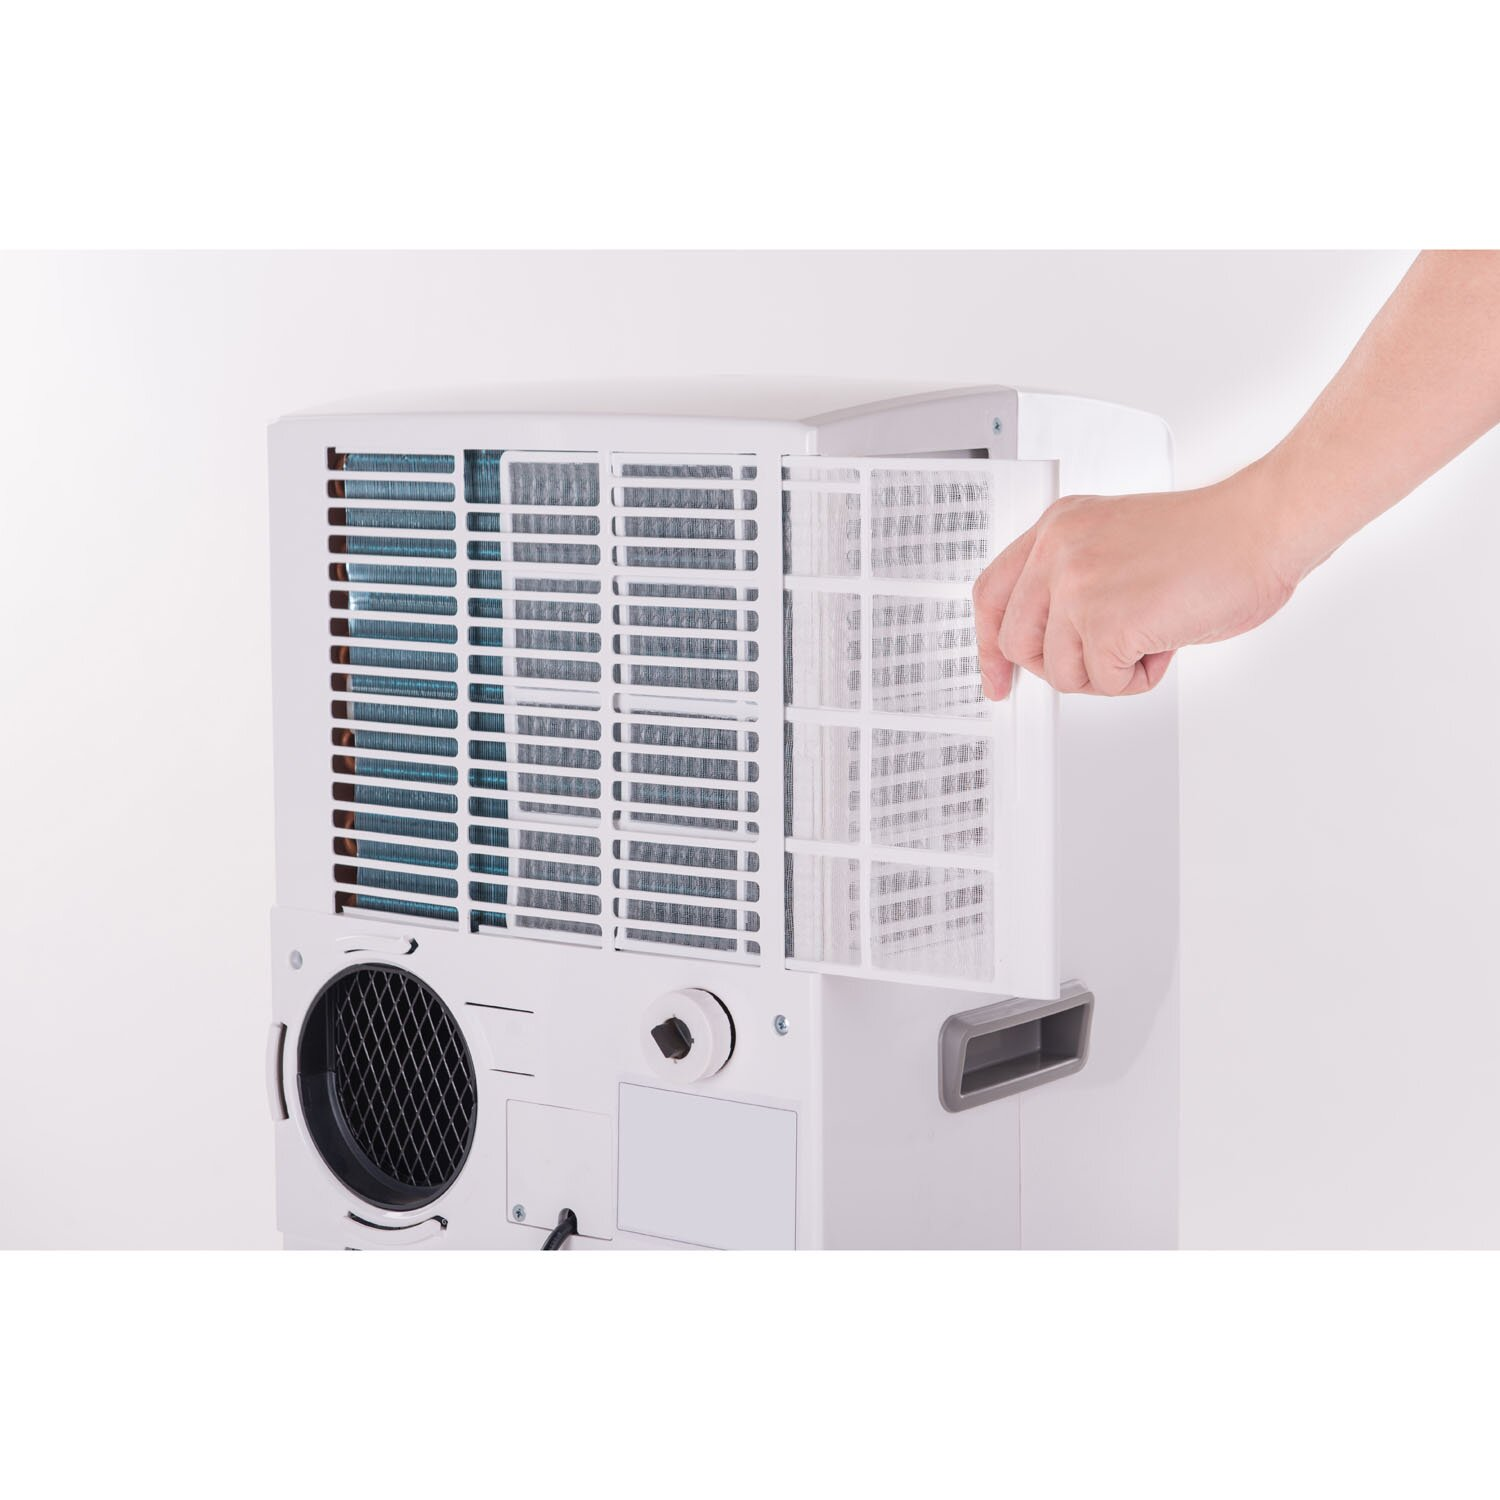 Portable Travel Straw Haier 8000 Btu Portable Air Conditioner Parts Portable Drinking Straw Quiet Portable Evaporative Air Cooler: Honeywell 8,000 BTU Portable Air Conditioner With Front